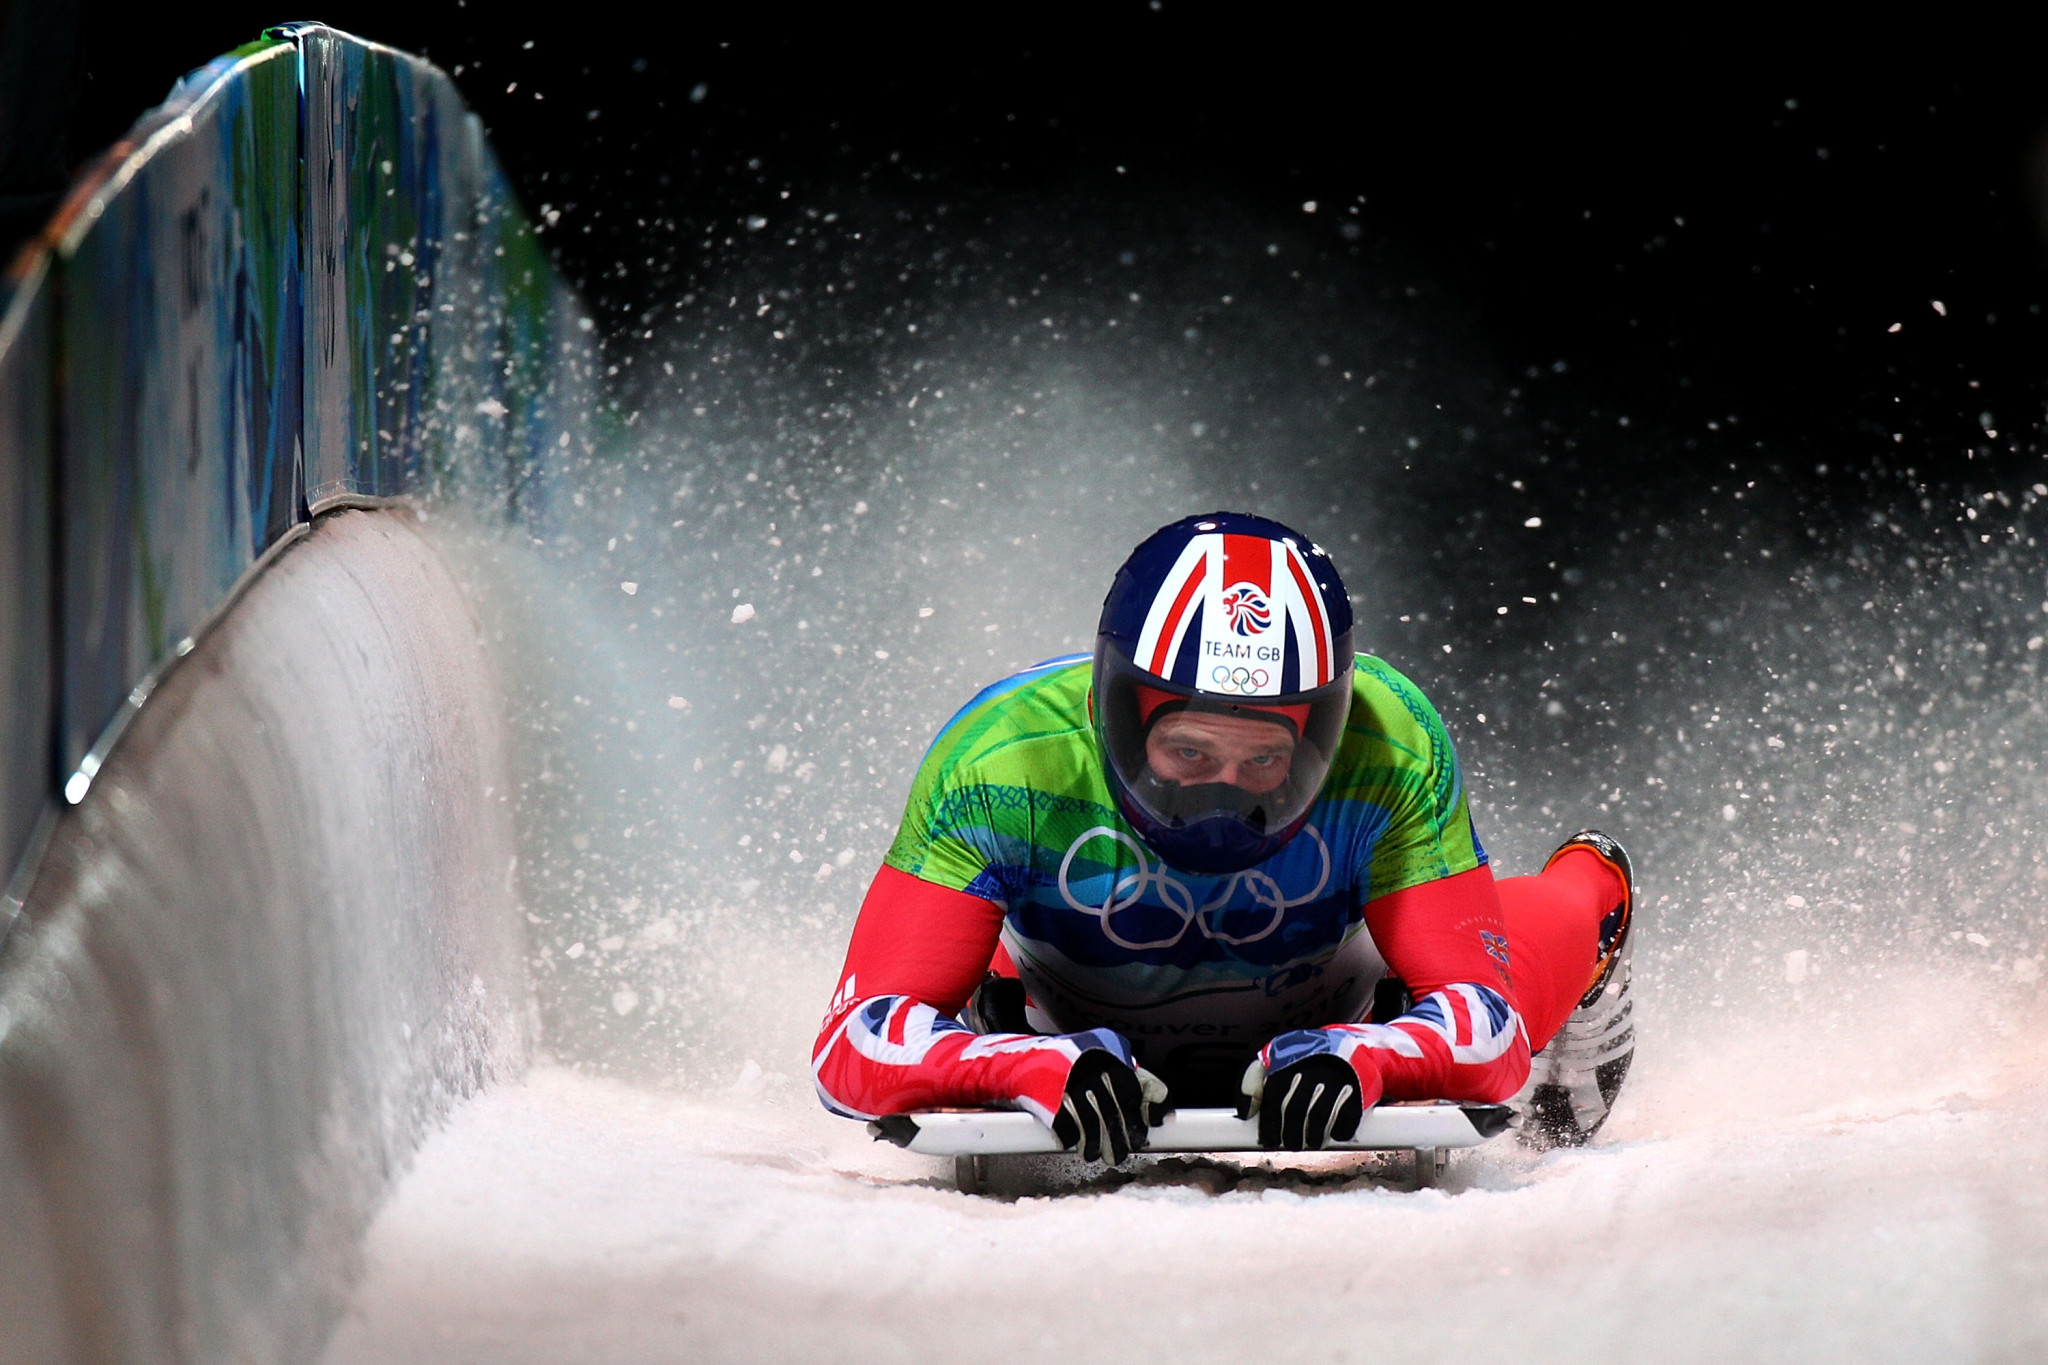 Britain's former skeleton Olympian and IOC member Adam Pengilly is seeking to remain IBSF vice-president ©Getty Images